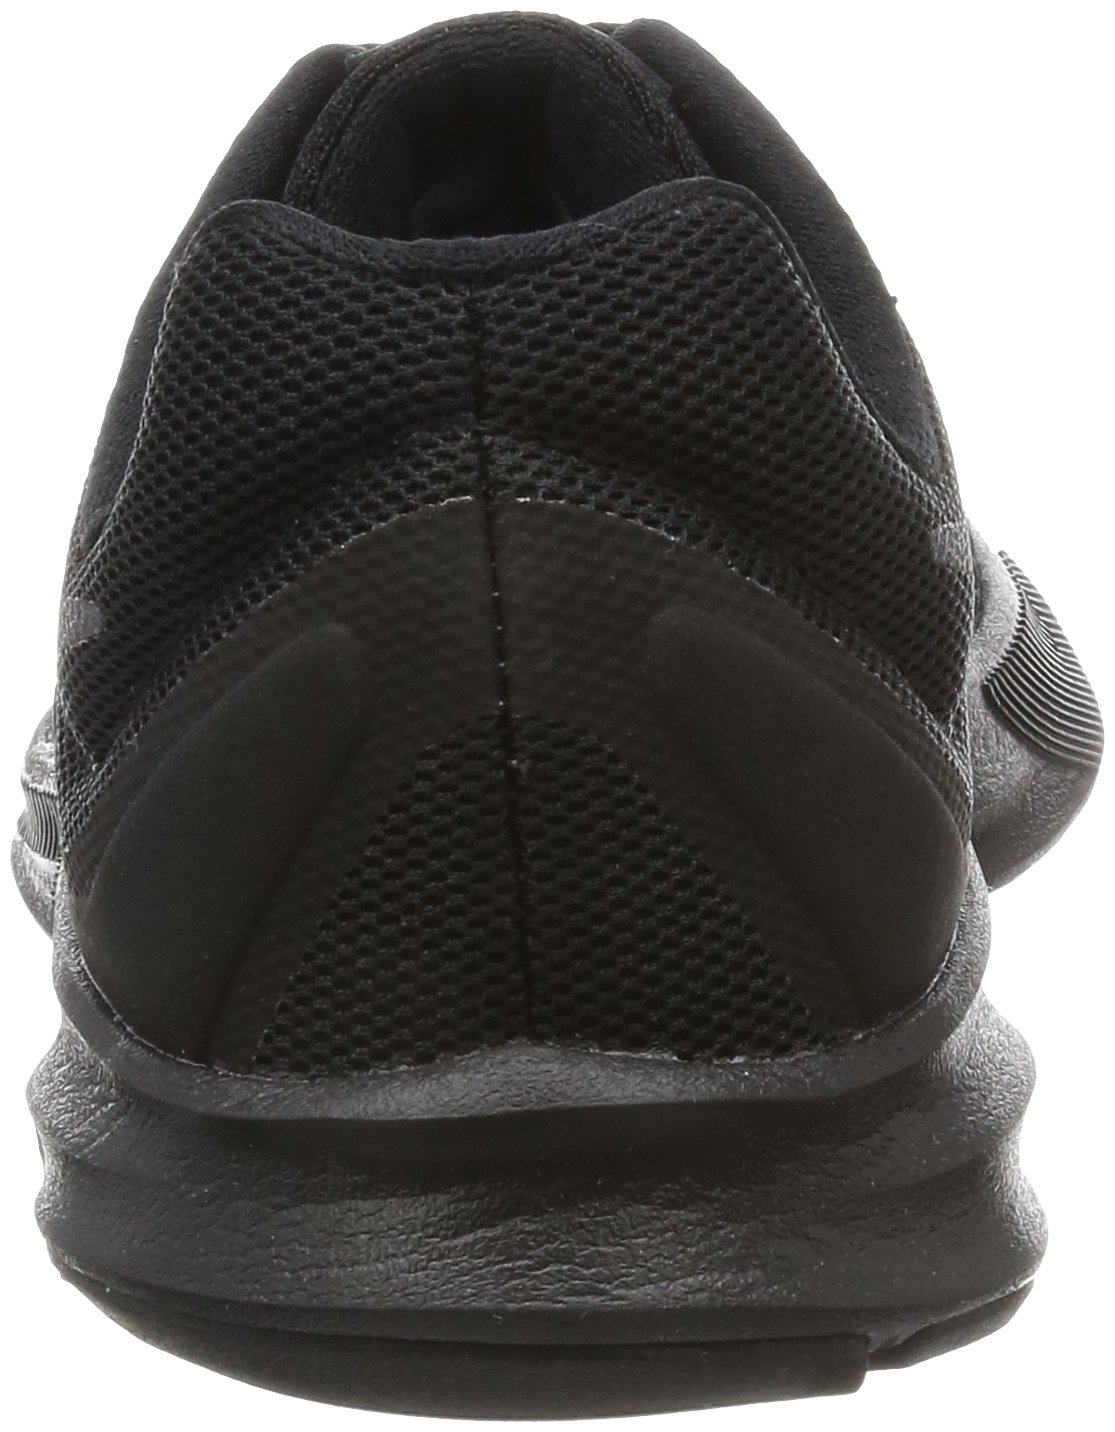 NIKE Women's Downshifter 7 B005A0GFCC Anthracite 5.5 B(M) US|Black/Mtlc Hematite Anthracite B005A0GFCC 2bb317